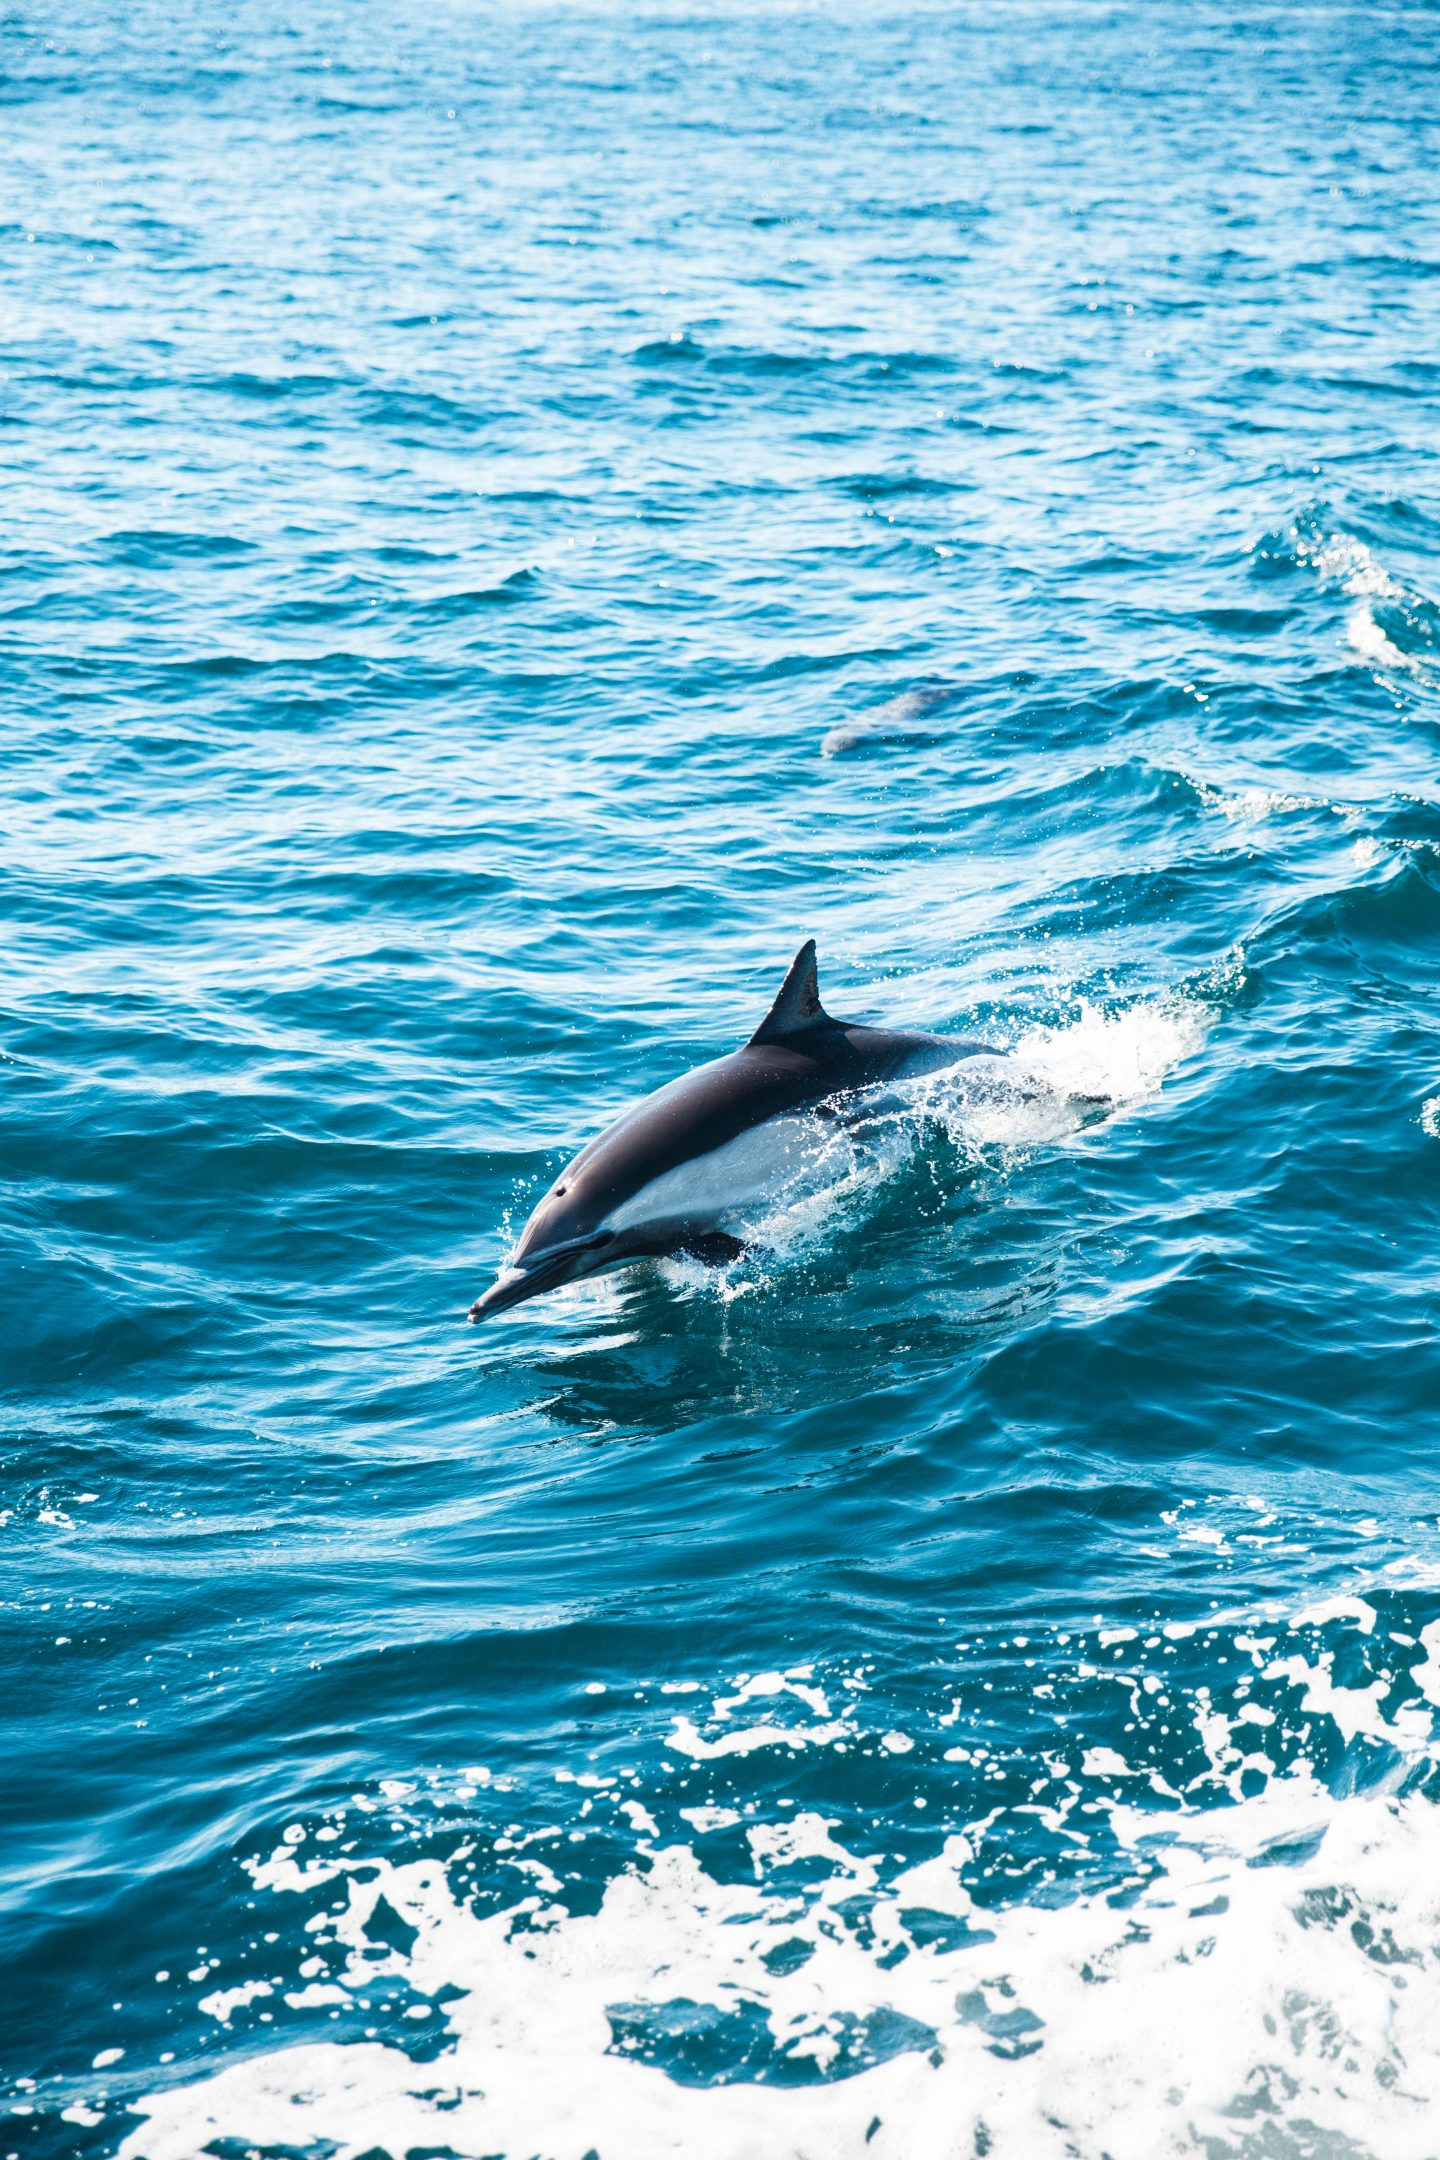 a wild dolphin jumping out of the water in the ocean, bright colored ocean